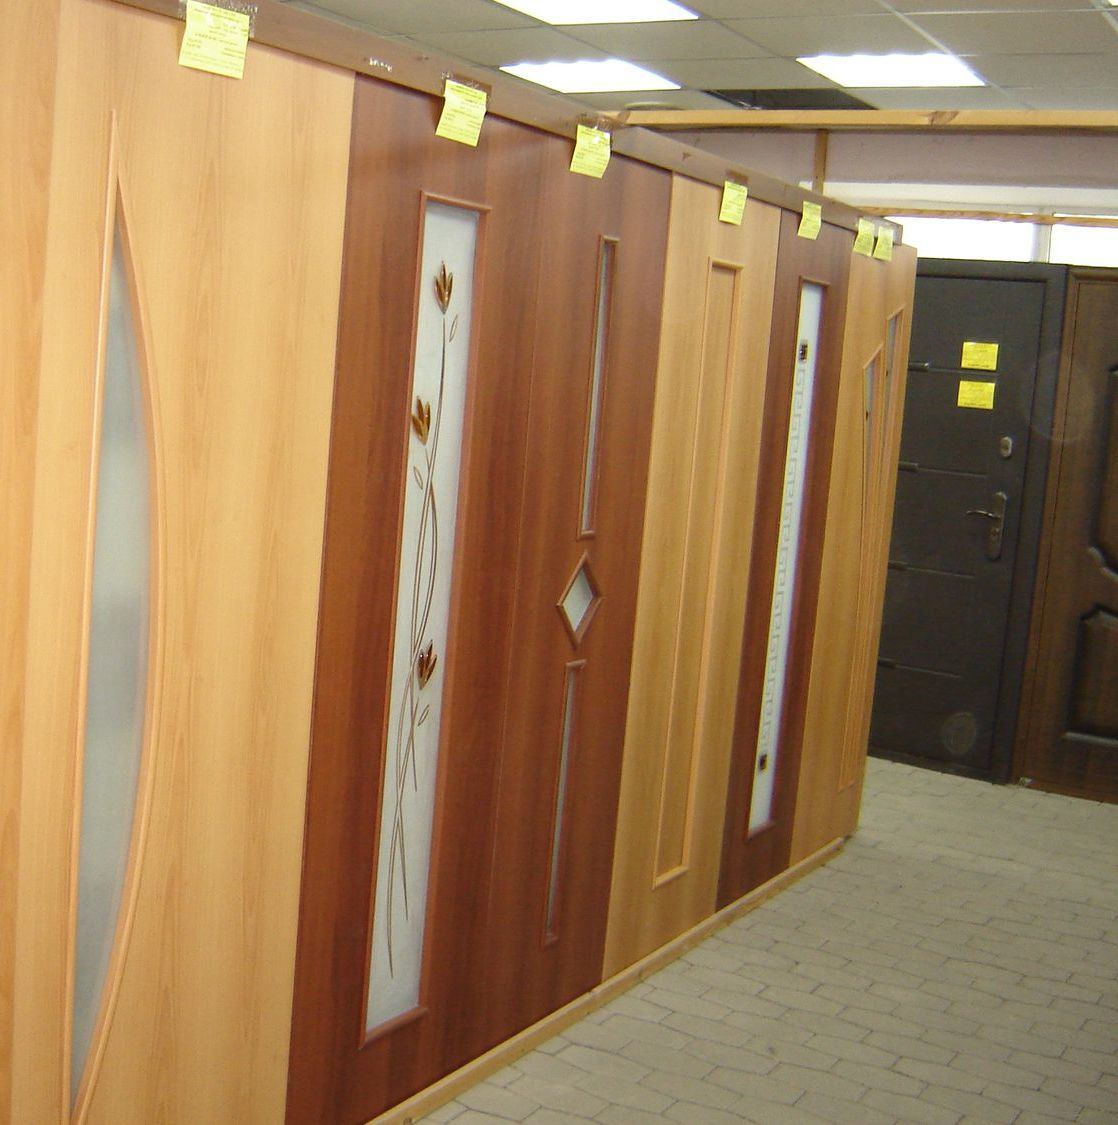 Methods of decorative finishing of interior doors laminated interior doors for sale planetlyrics Image collections